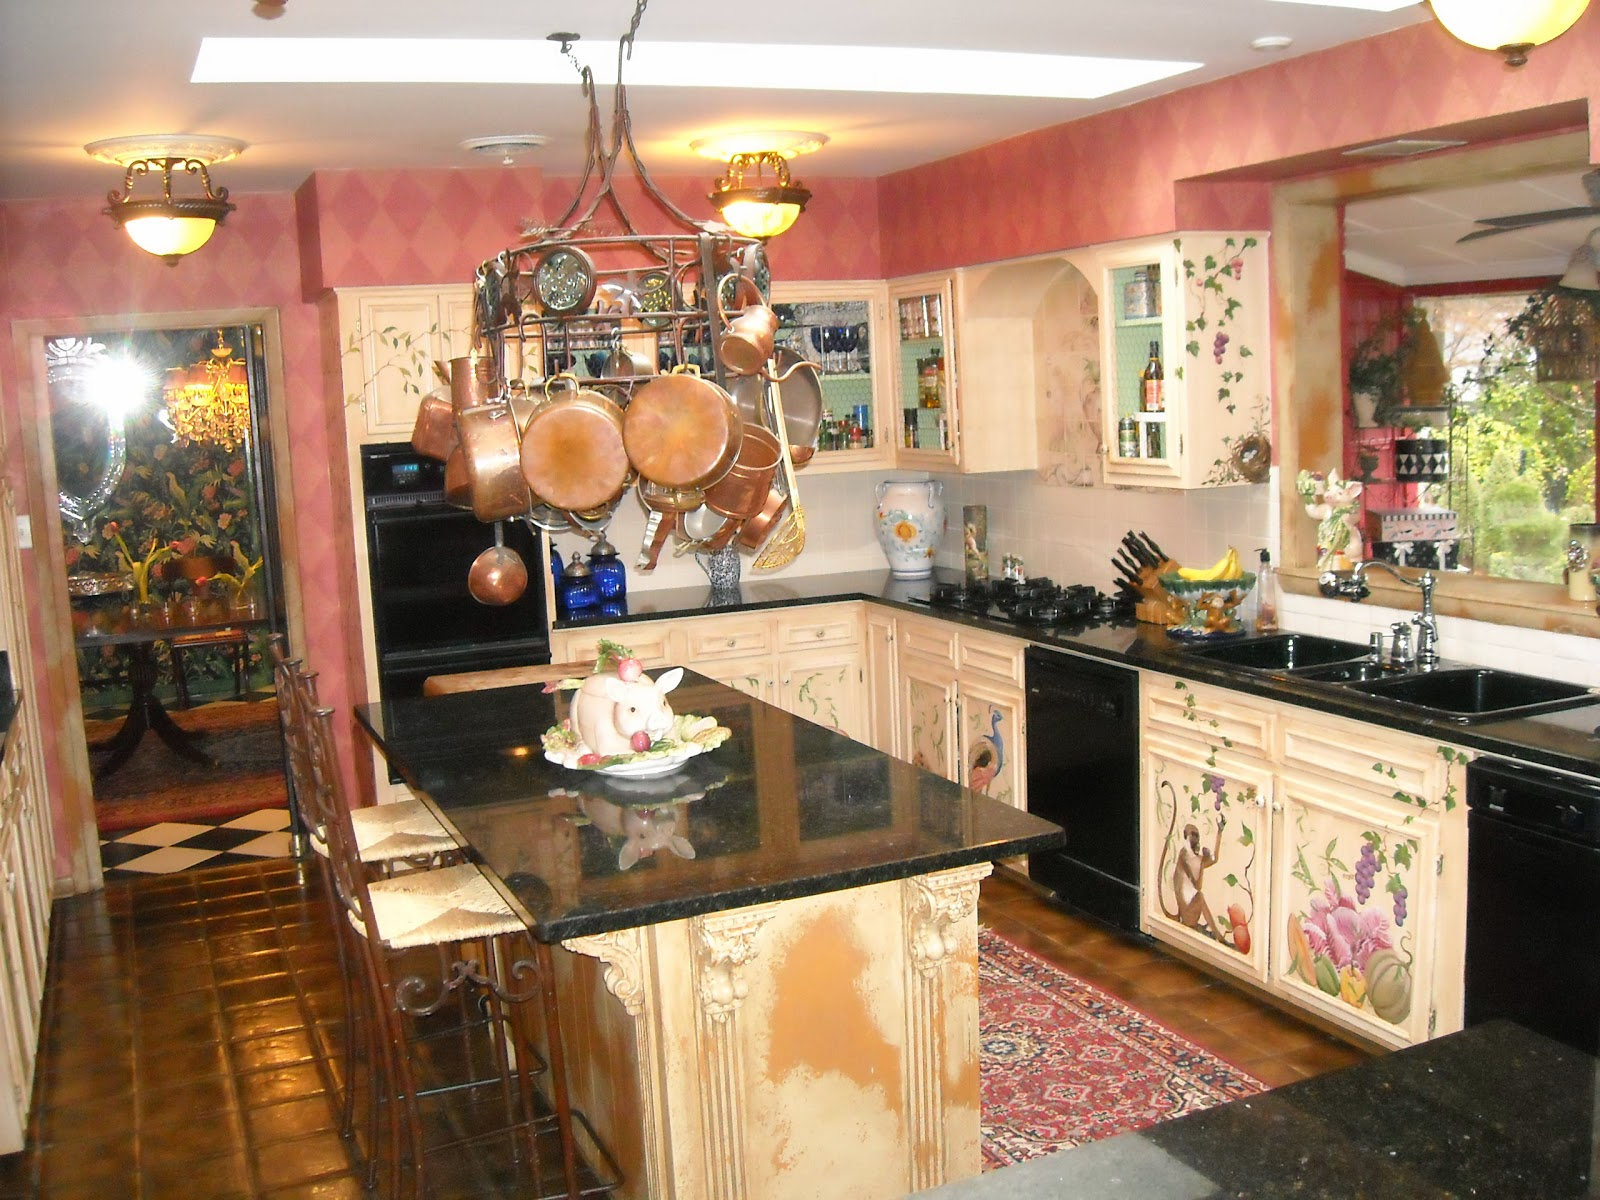 Bows on a pig french country kitchen - French country kitchens ...